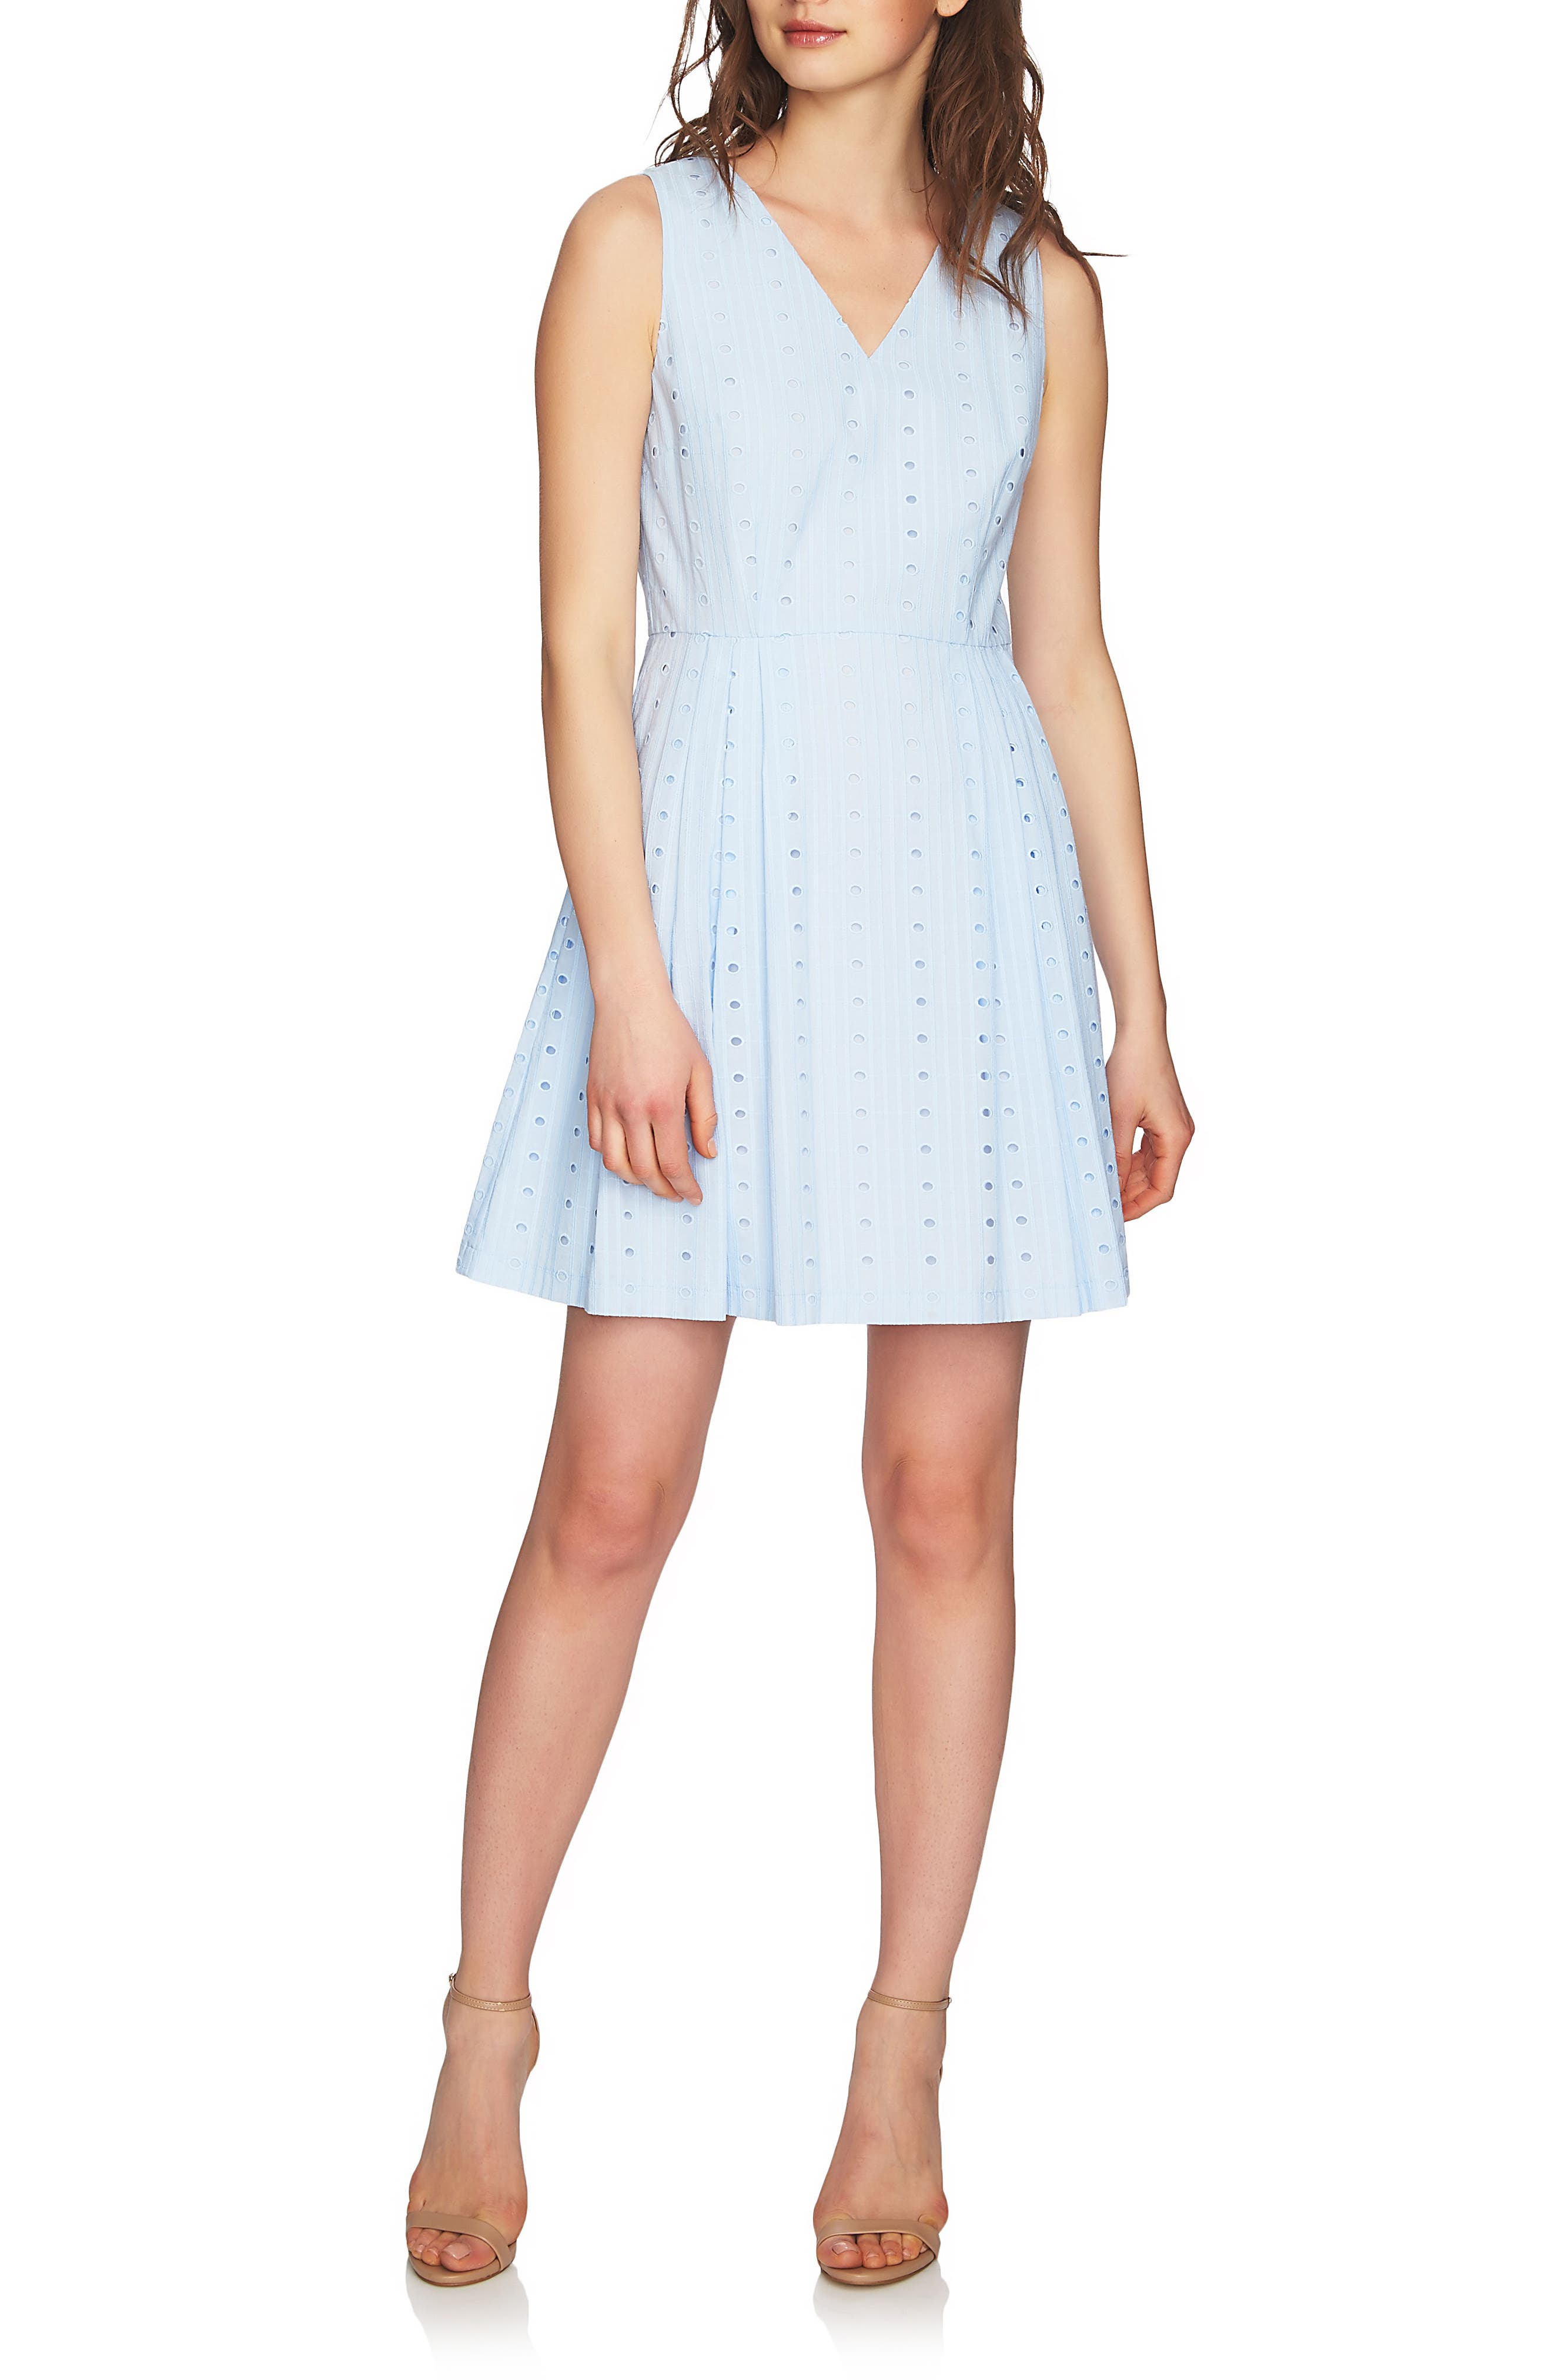 Clairborne Eyelet Fit & Flare Dress,                         Main,                         color, Bluebird